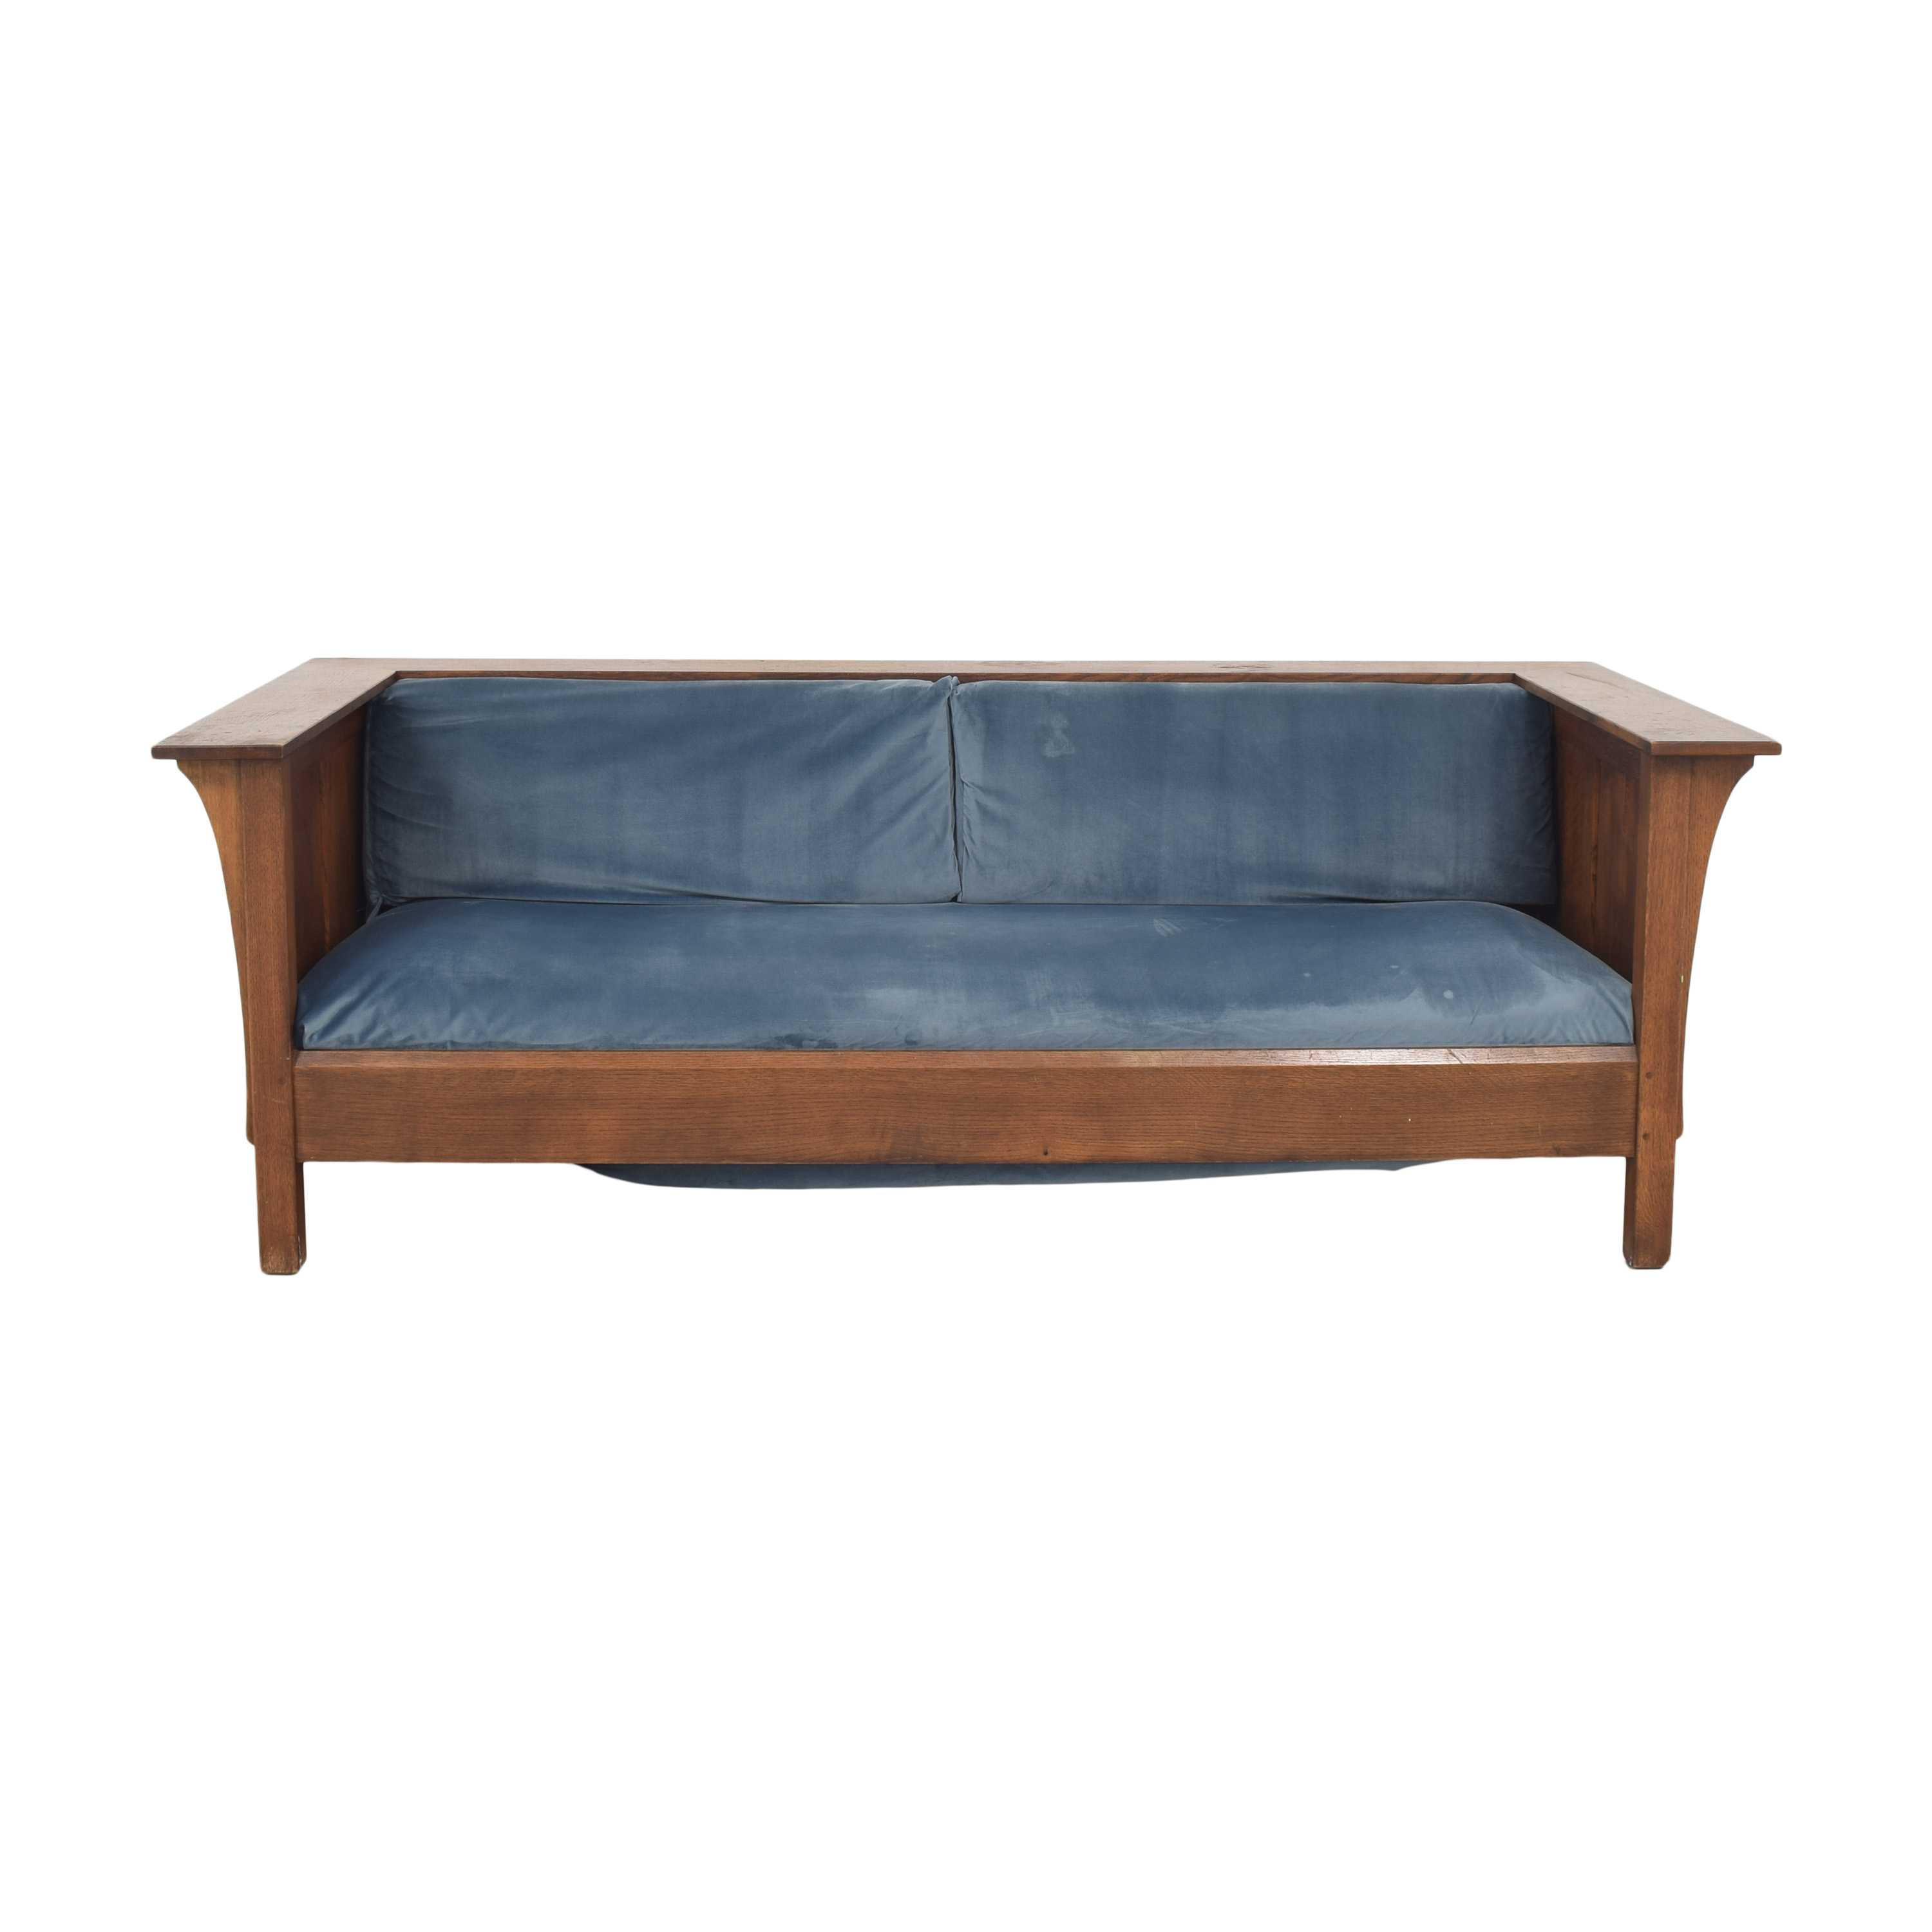 Stickley Furniture Stickley Mission Collection Prairie Settle Sofa coupon